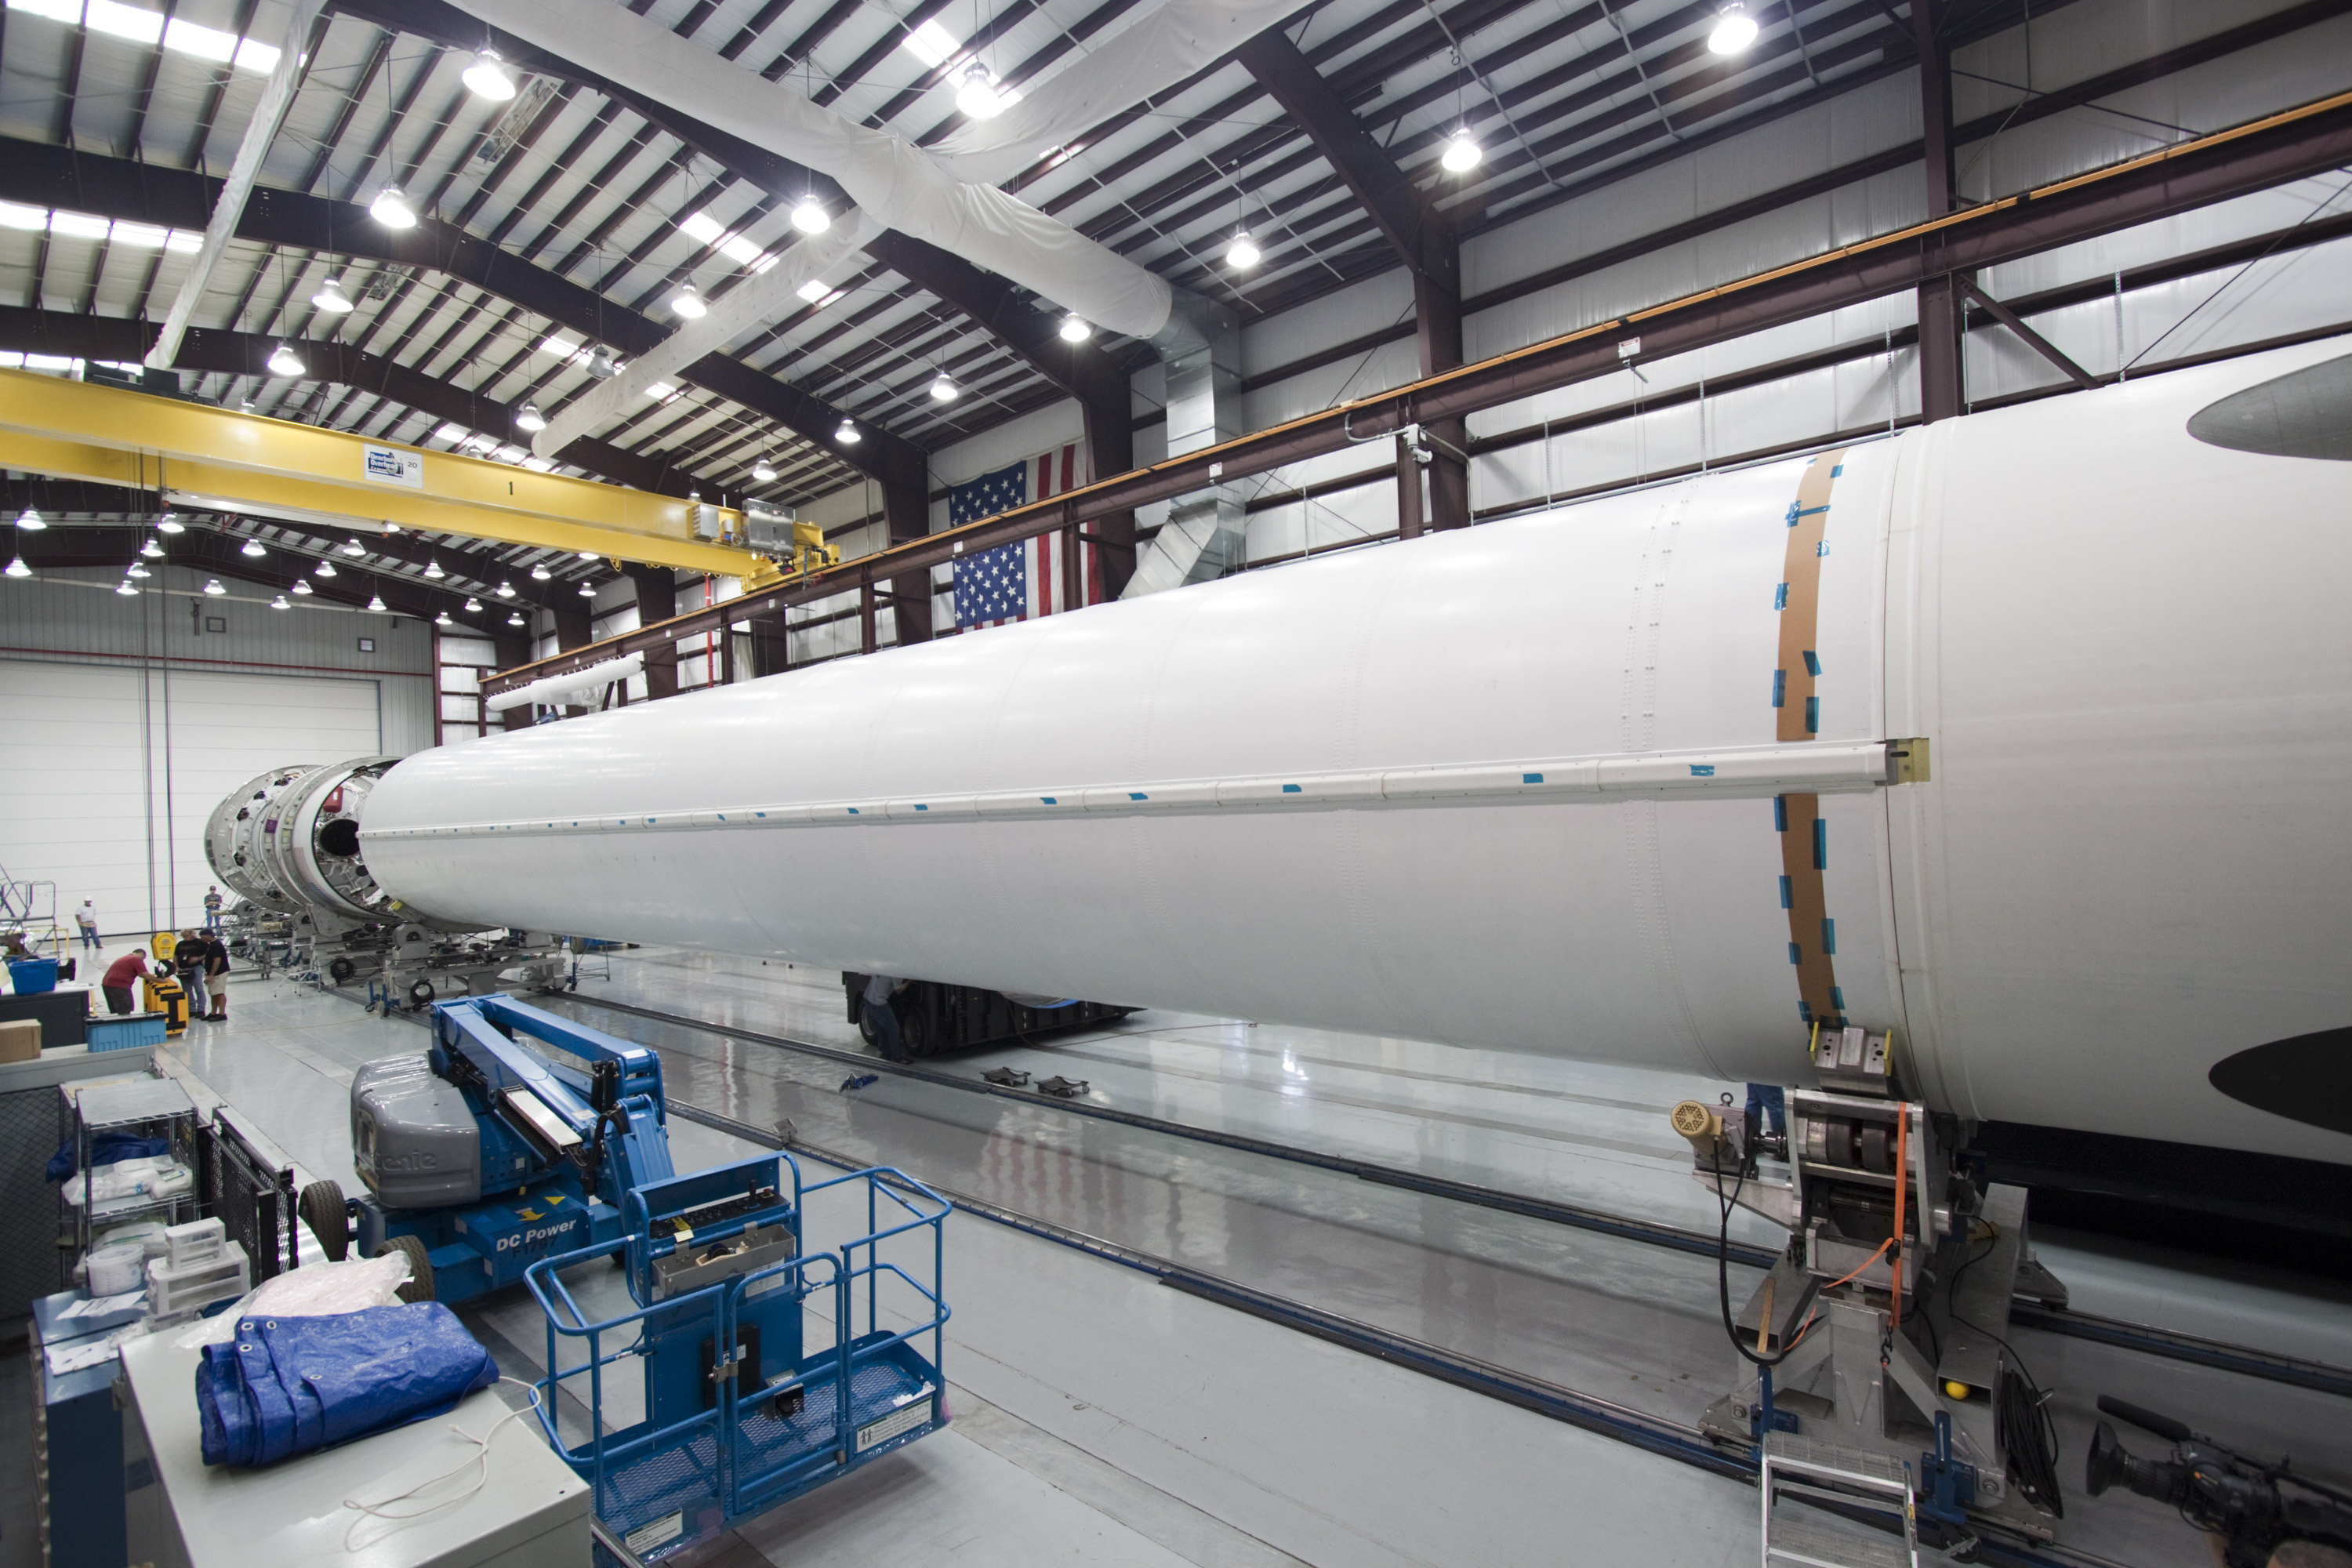 hangar spacex falcon 9 high resolution - photo #15